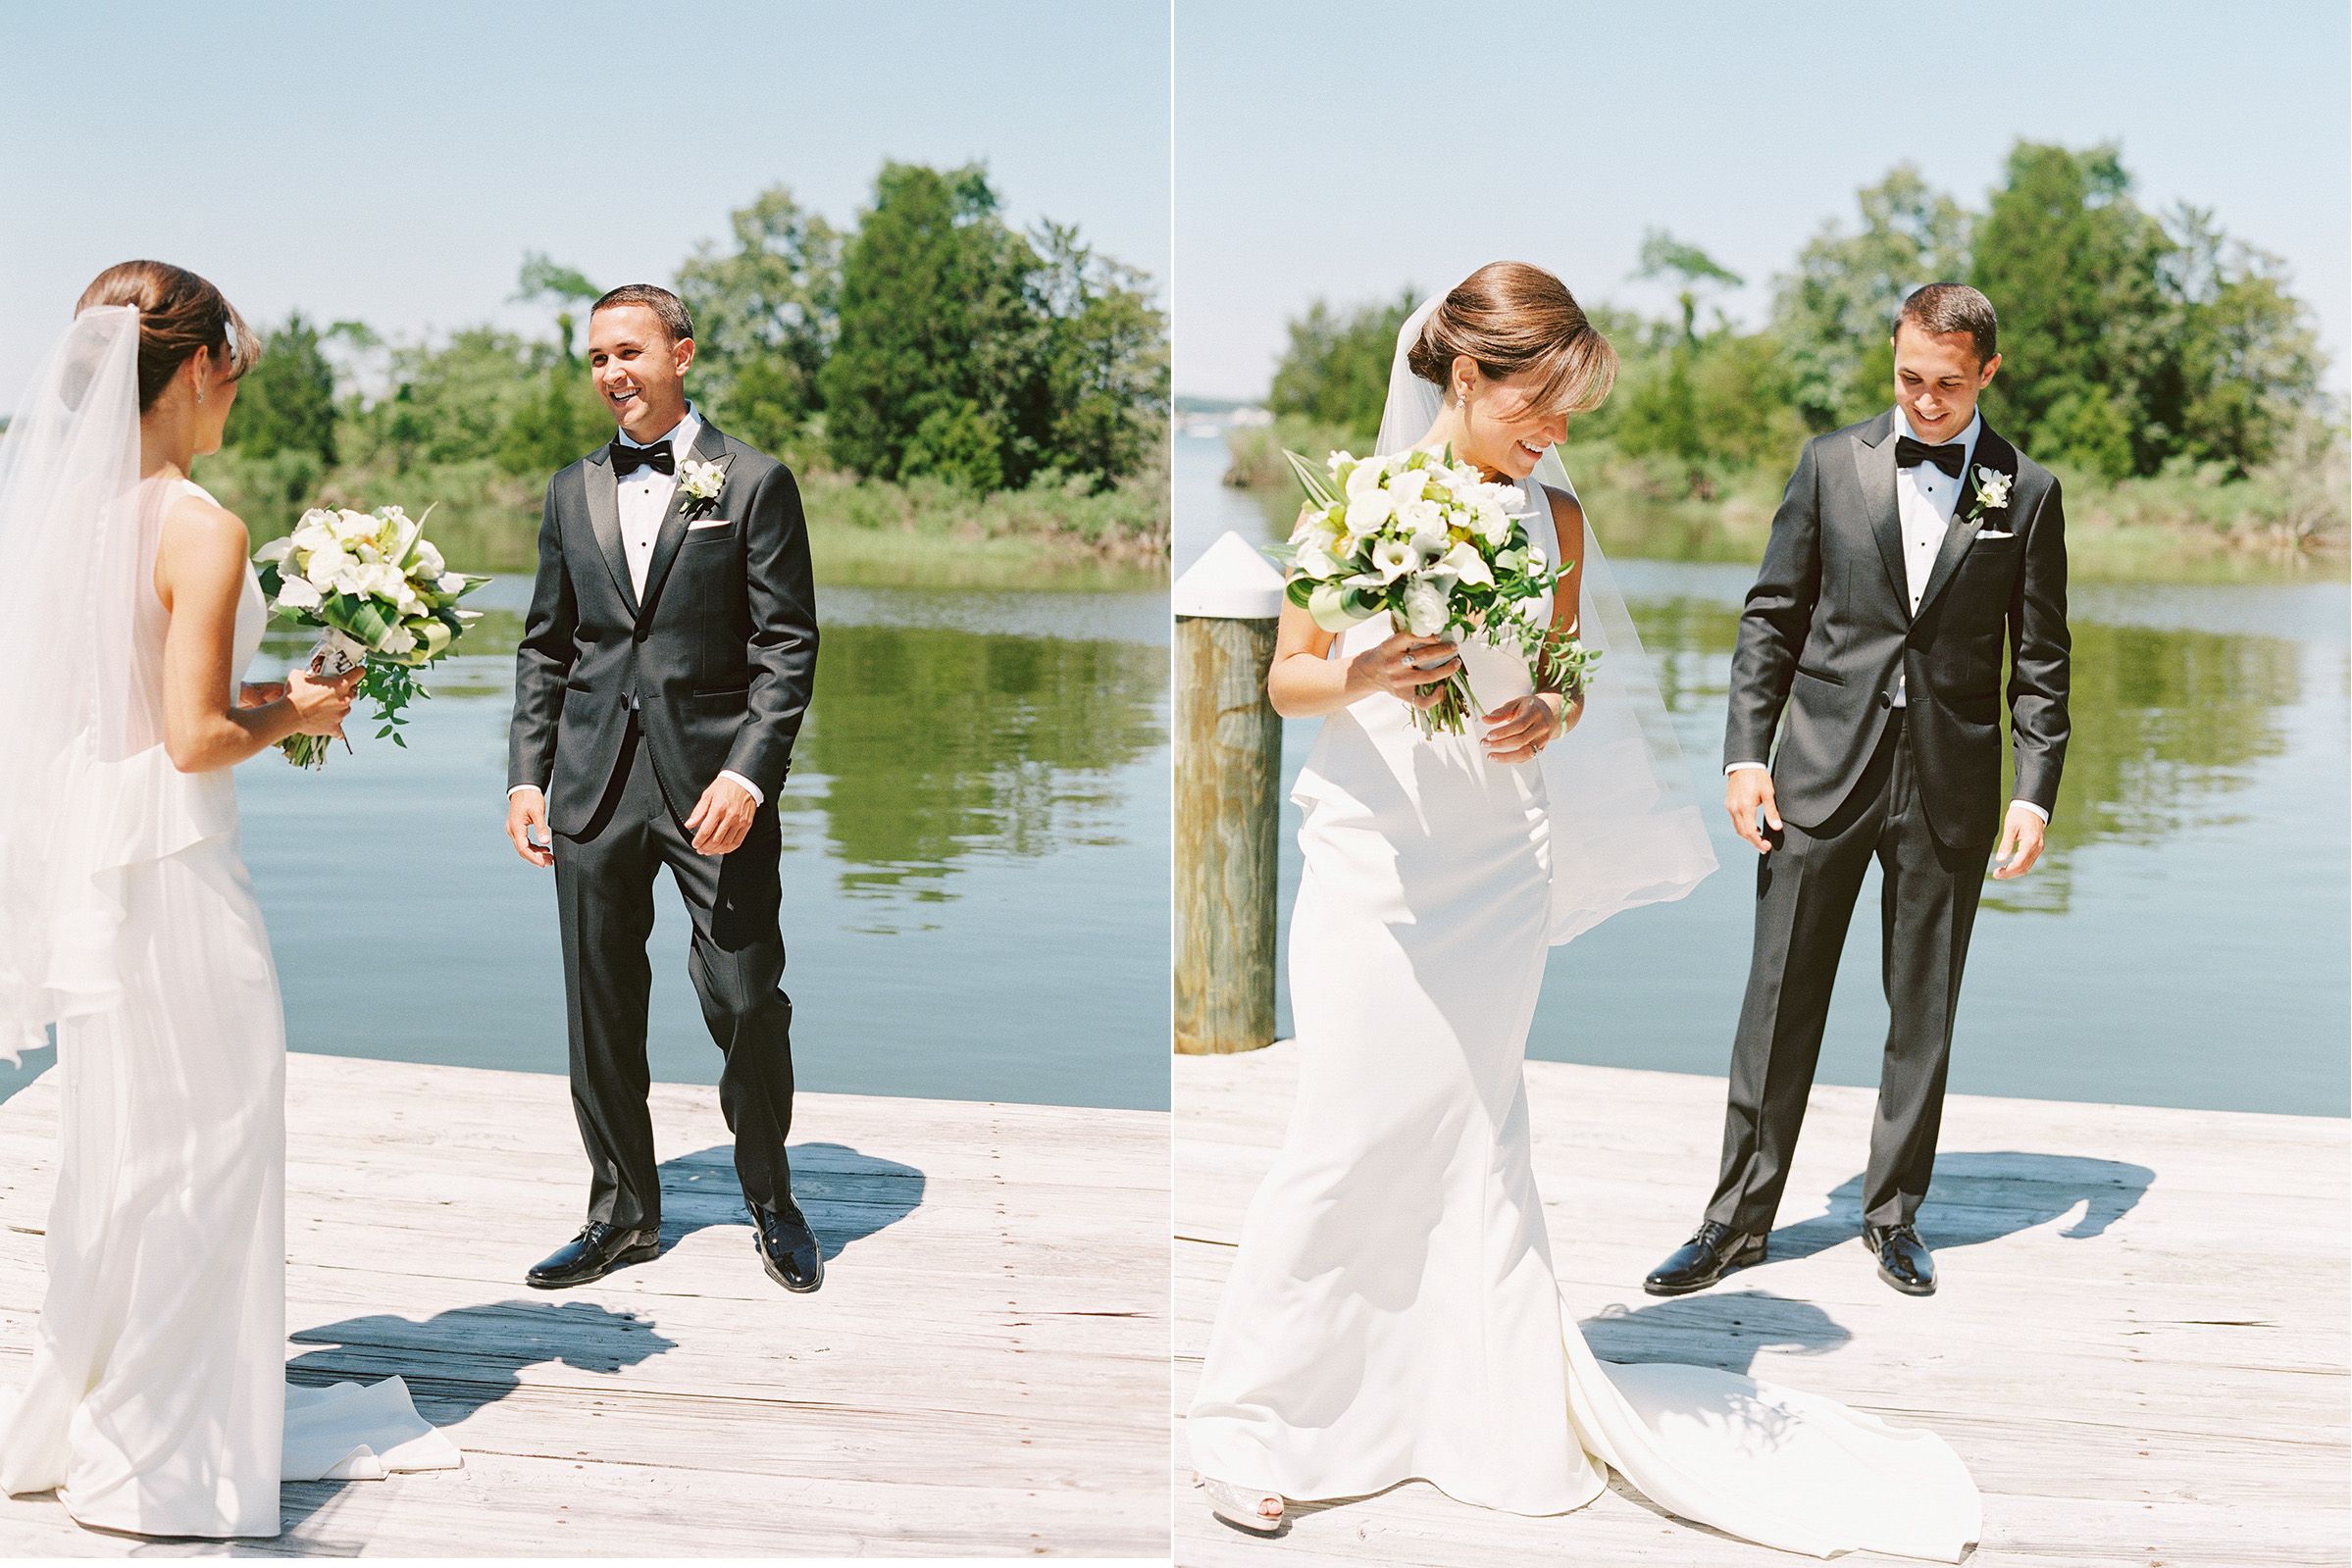 katie stoops photography-solomans island wedding16.jpg